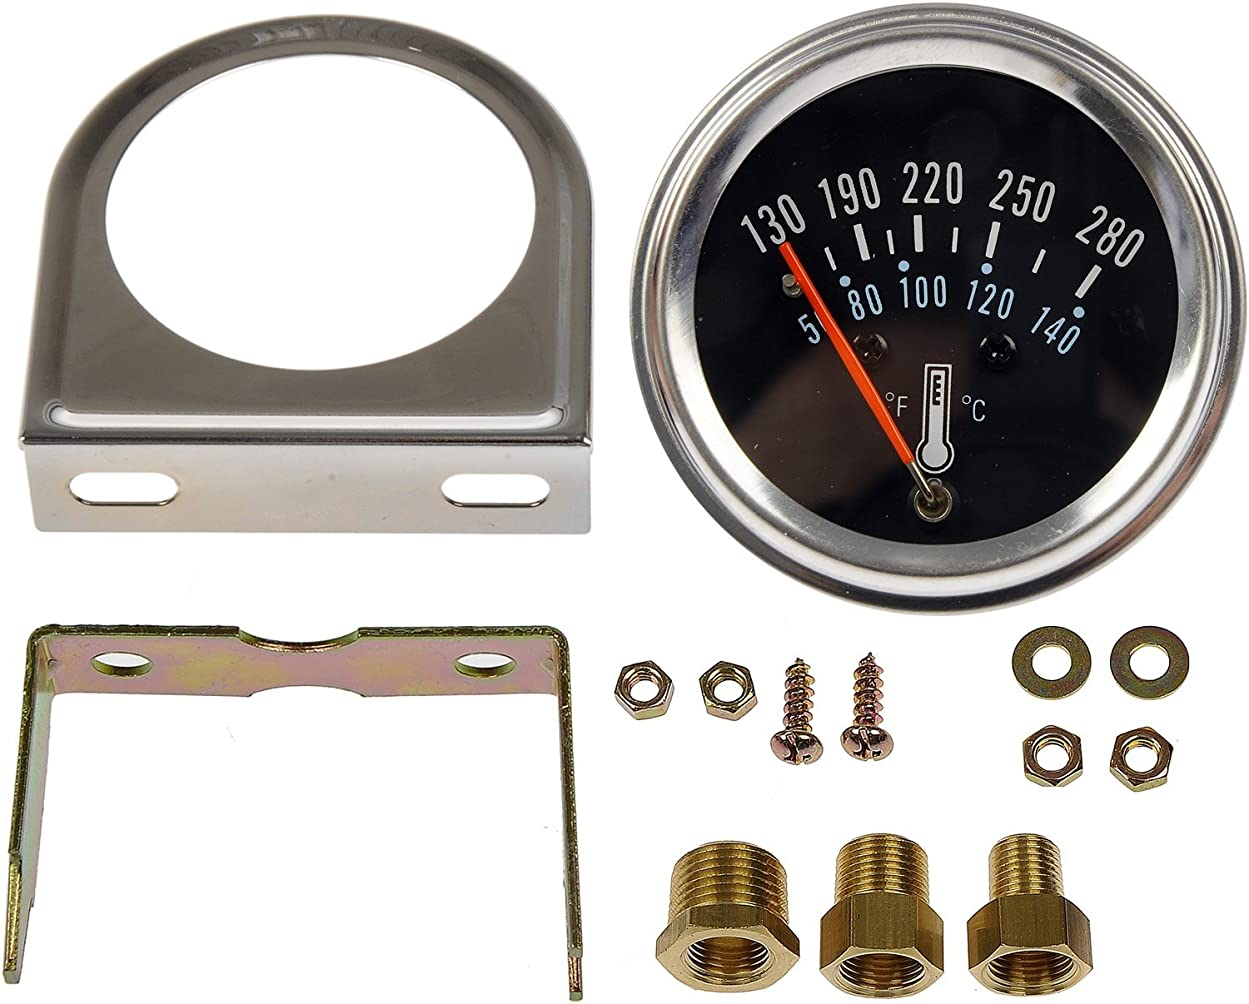 Dorman 7-155 Water Temperature Gauge rw07166929580